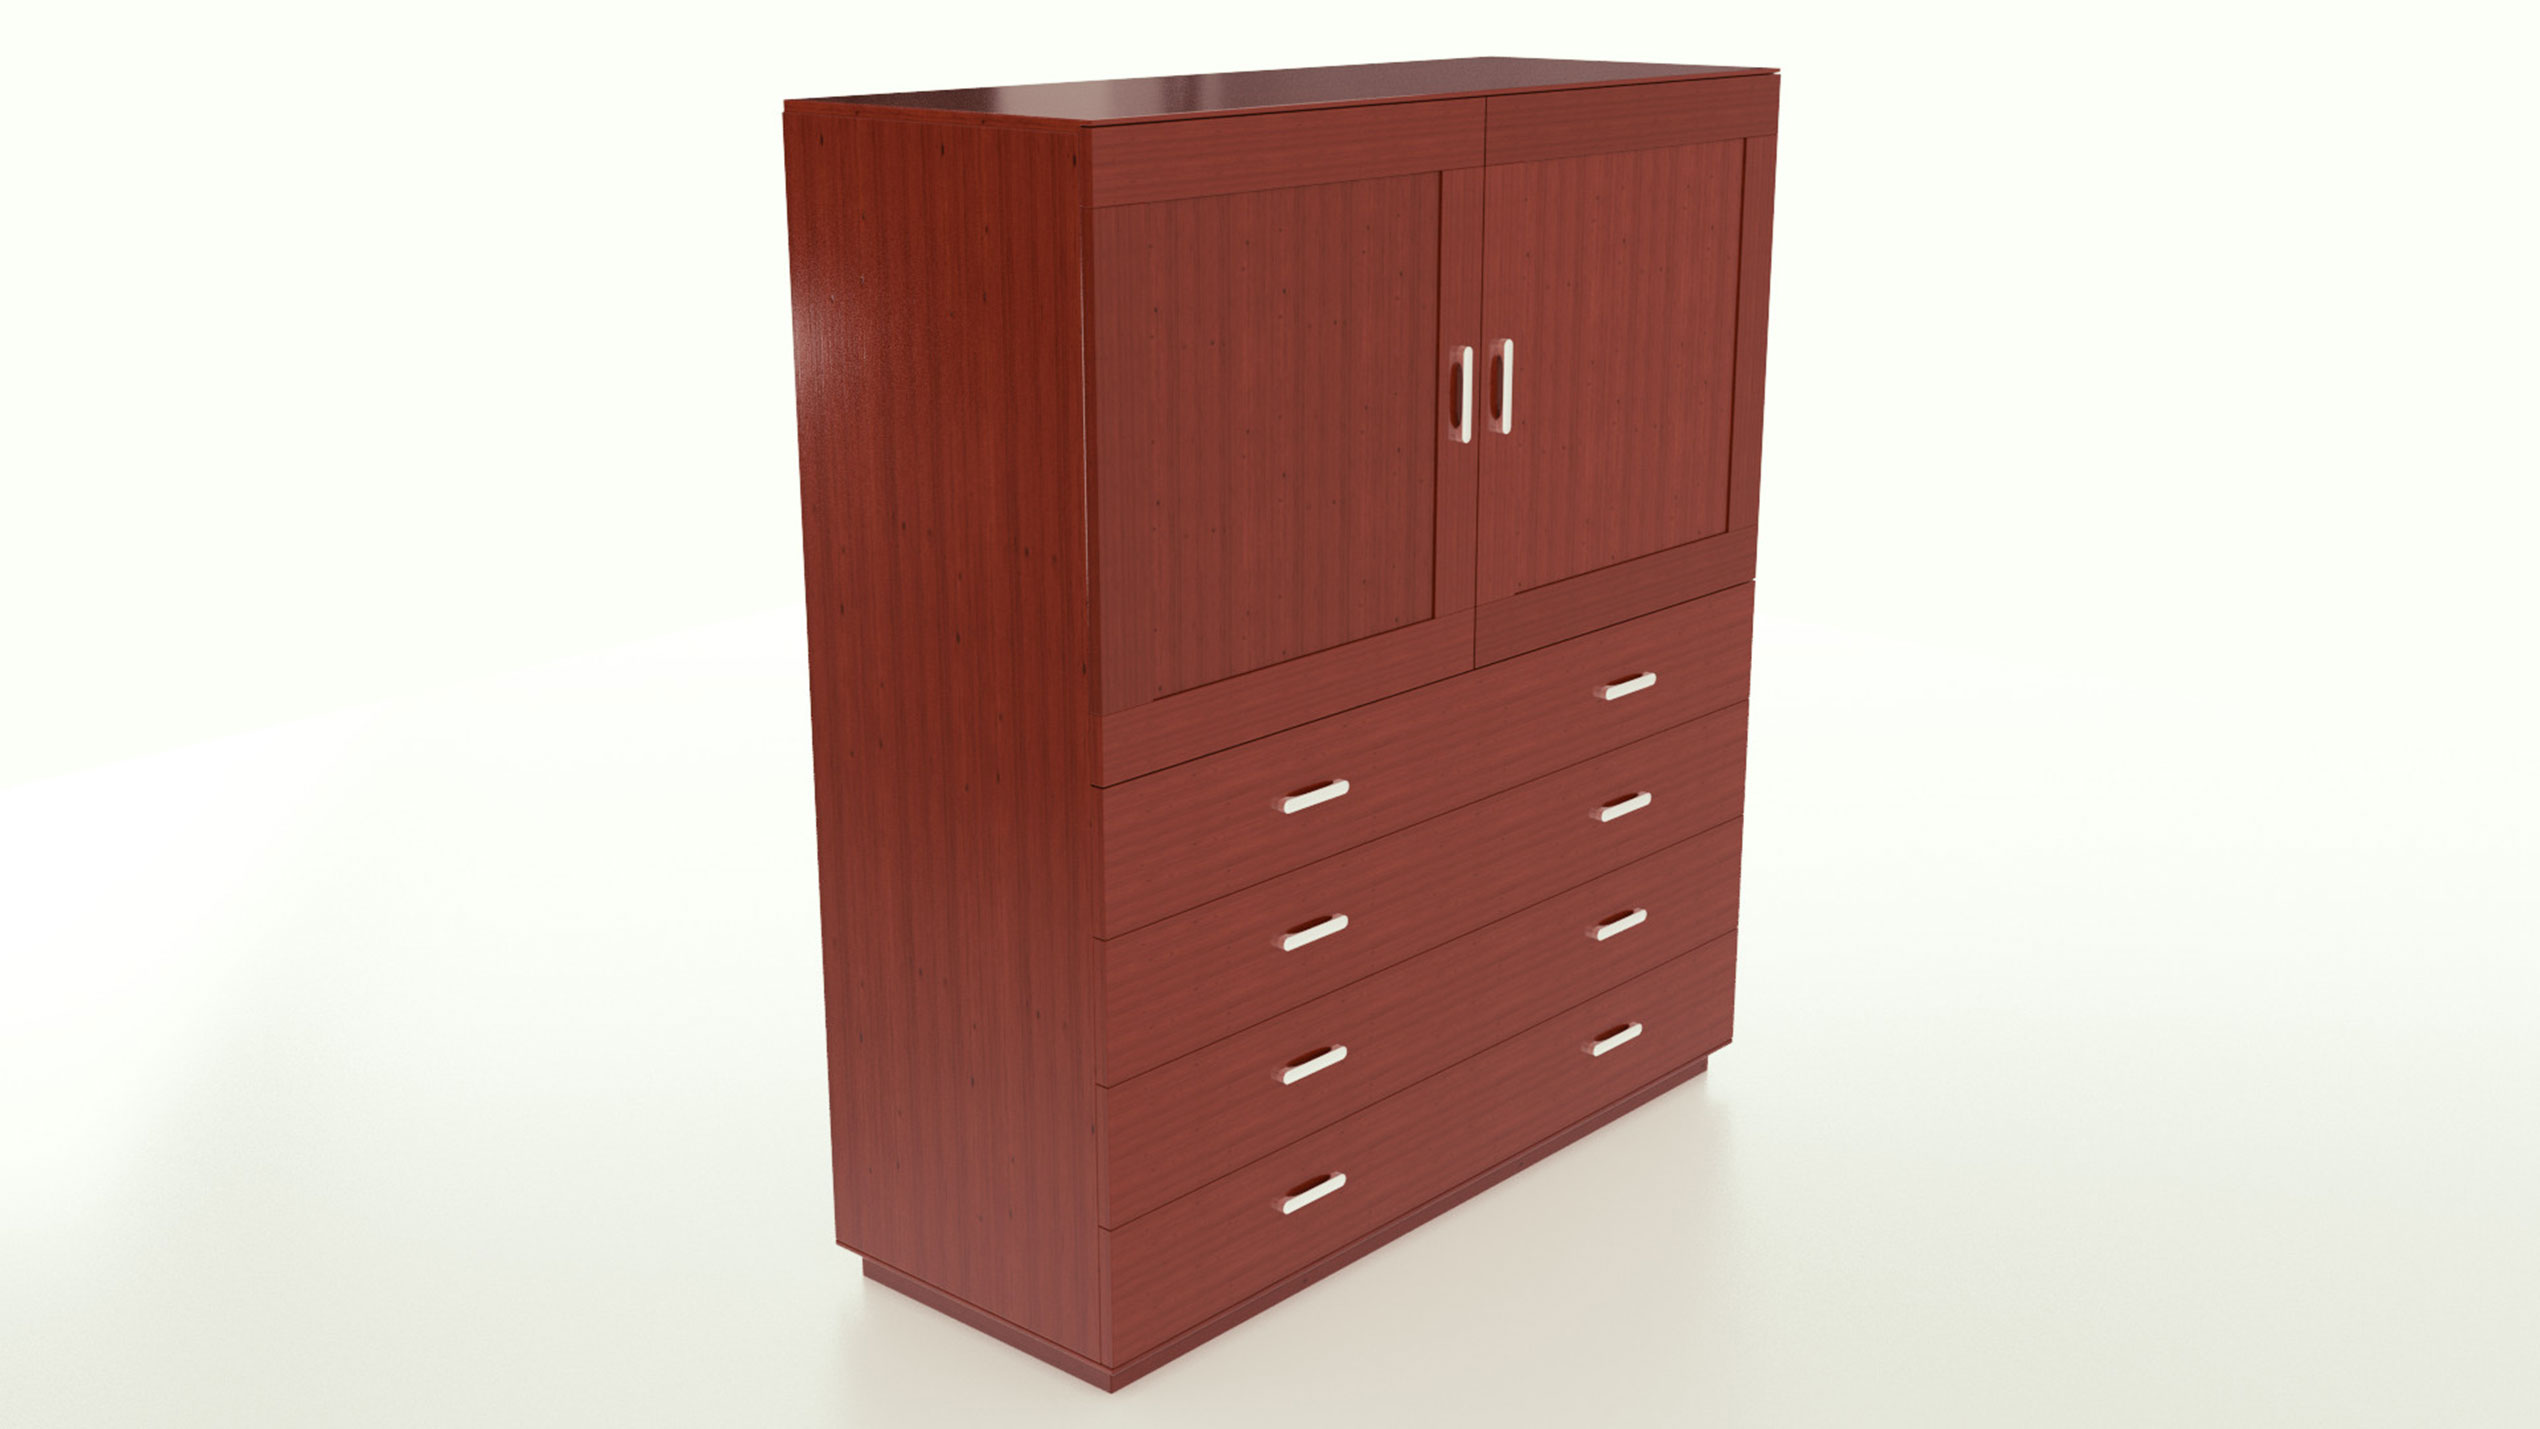 The Waldeck chest from Quagga Designs